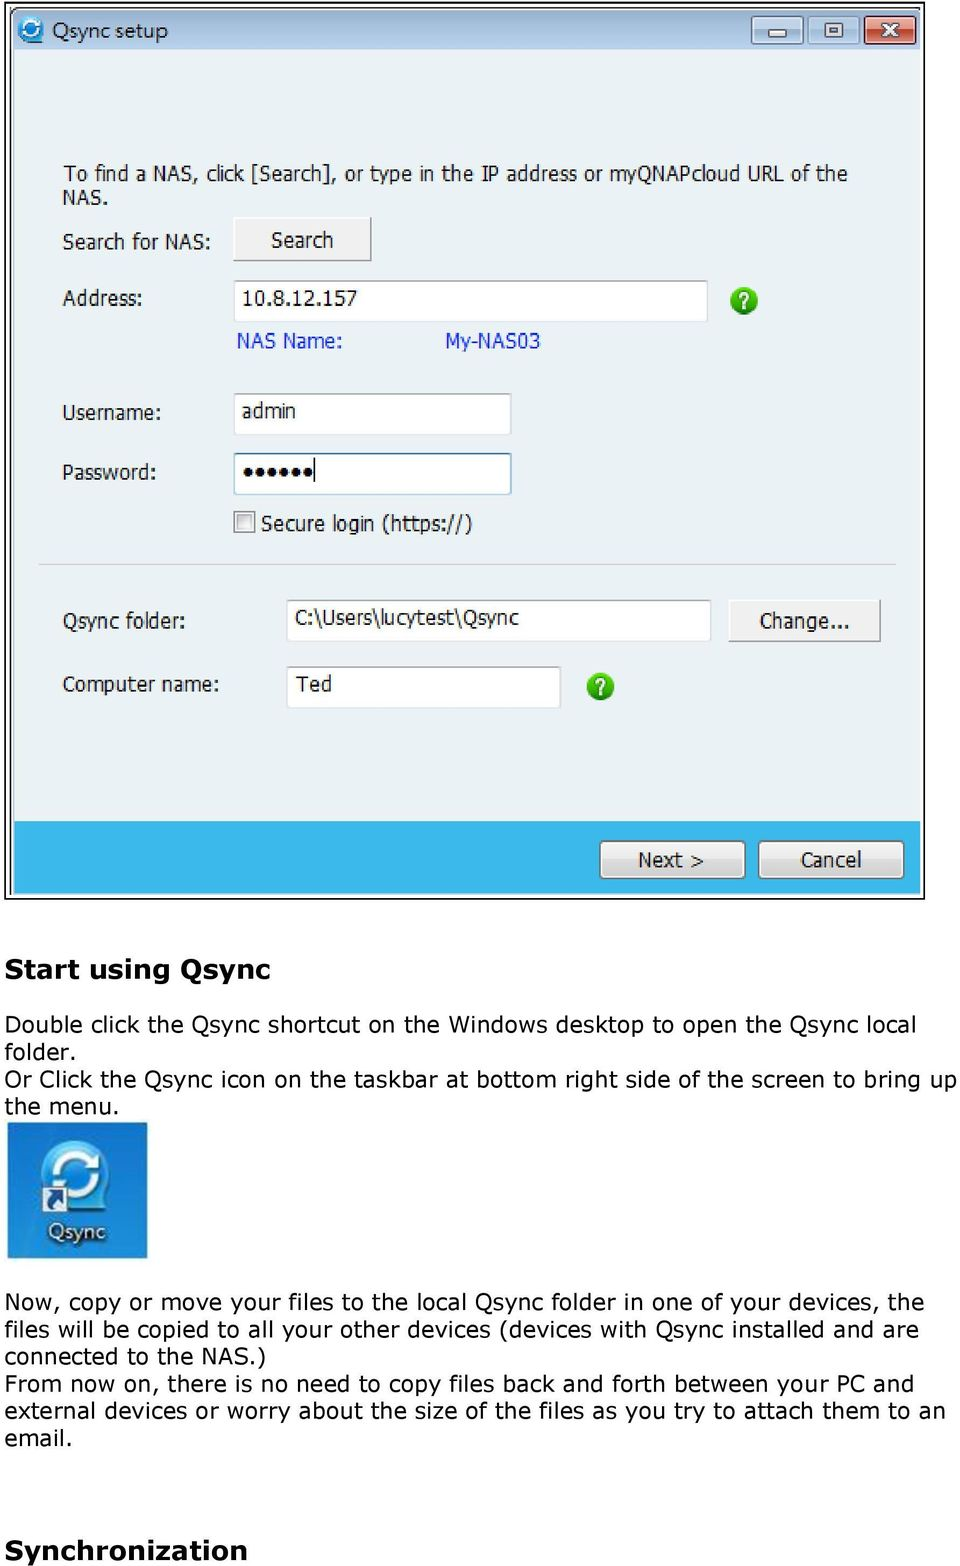 Now, copy or move your files to the local Qsync folder in one of your devices, the files will be copied to all your other devices (devices with